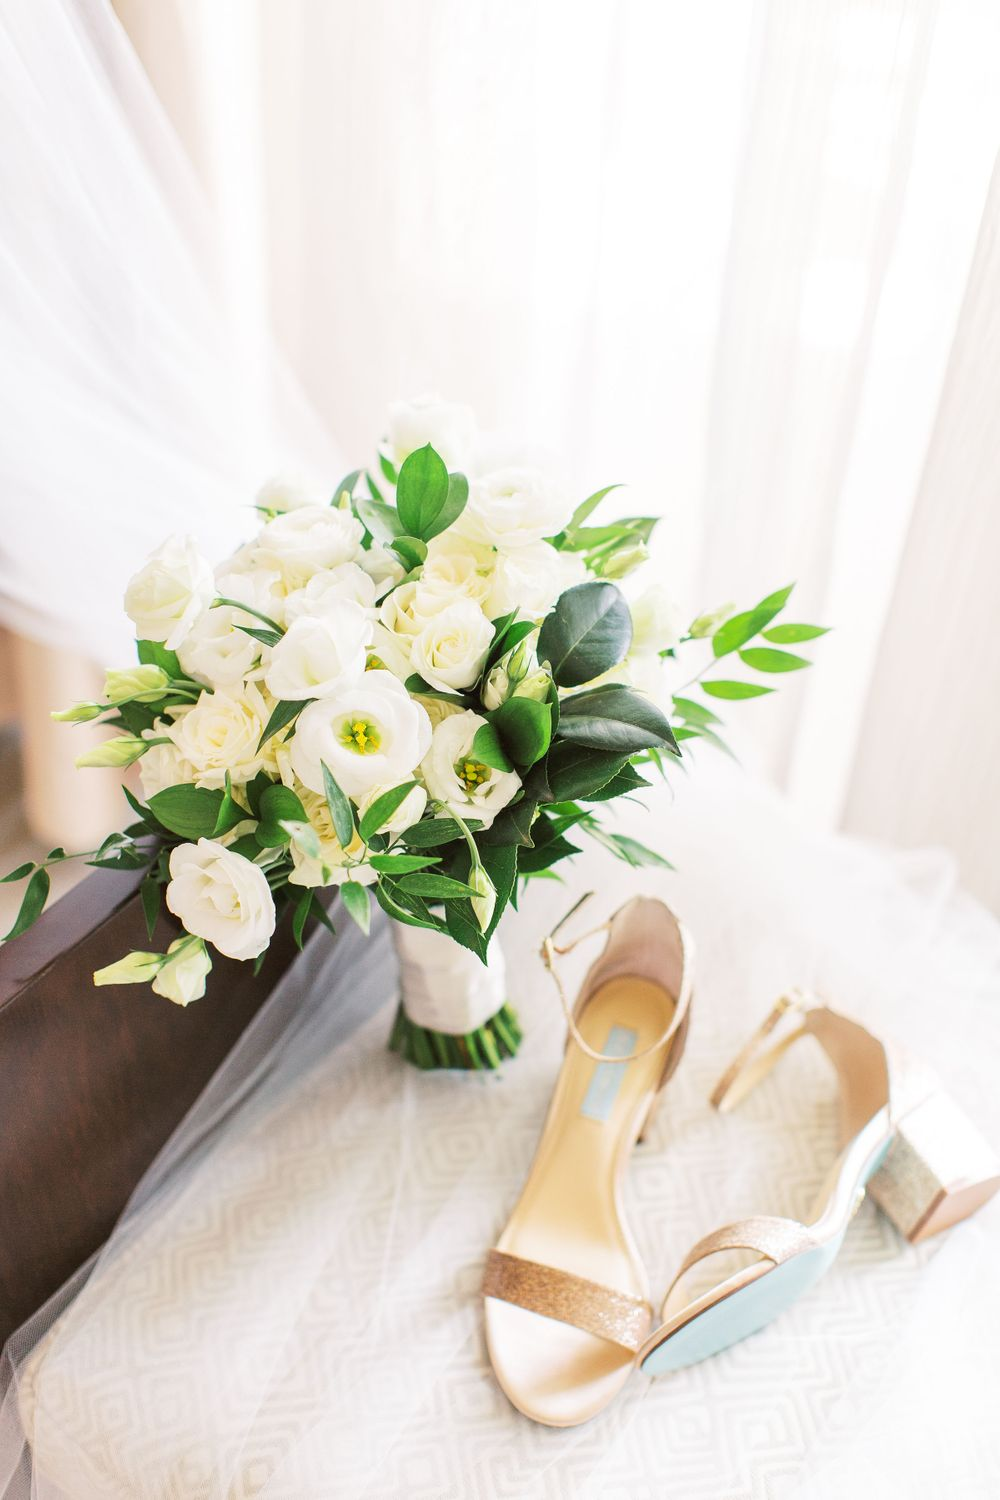 bridal bouquet and betsey johnson shoes styled at the westin resort on hilton head island, sc